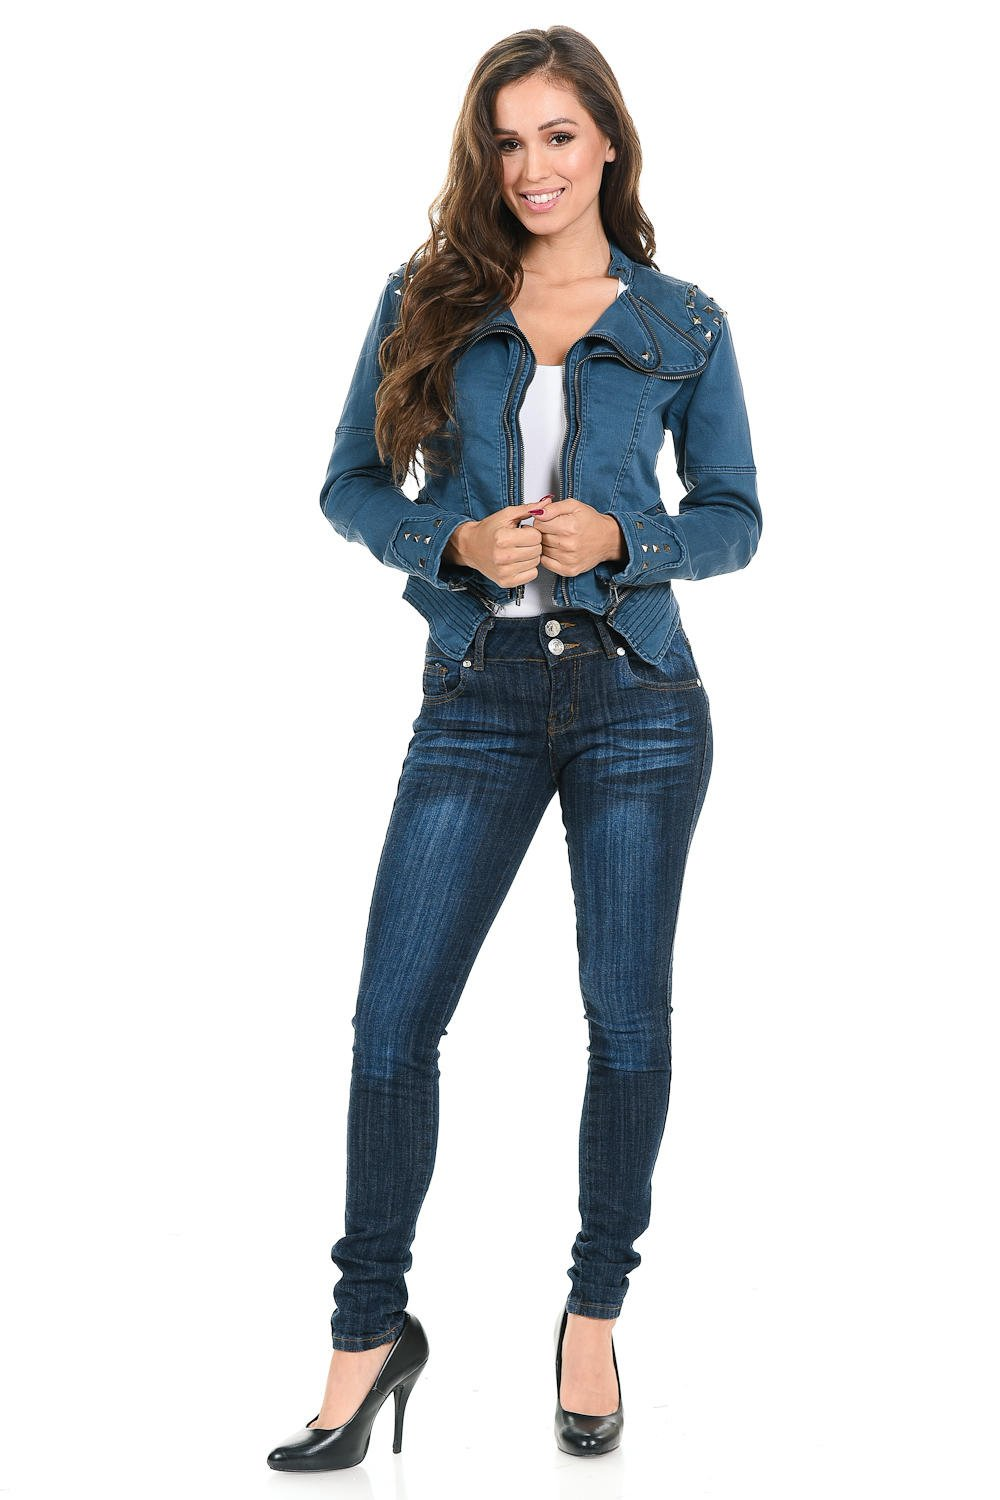 Sweet Look Women's Denim Jacket - Style N559A - Blue - Size Medium